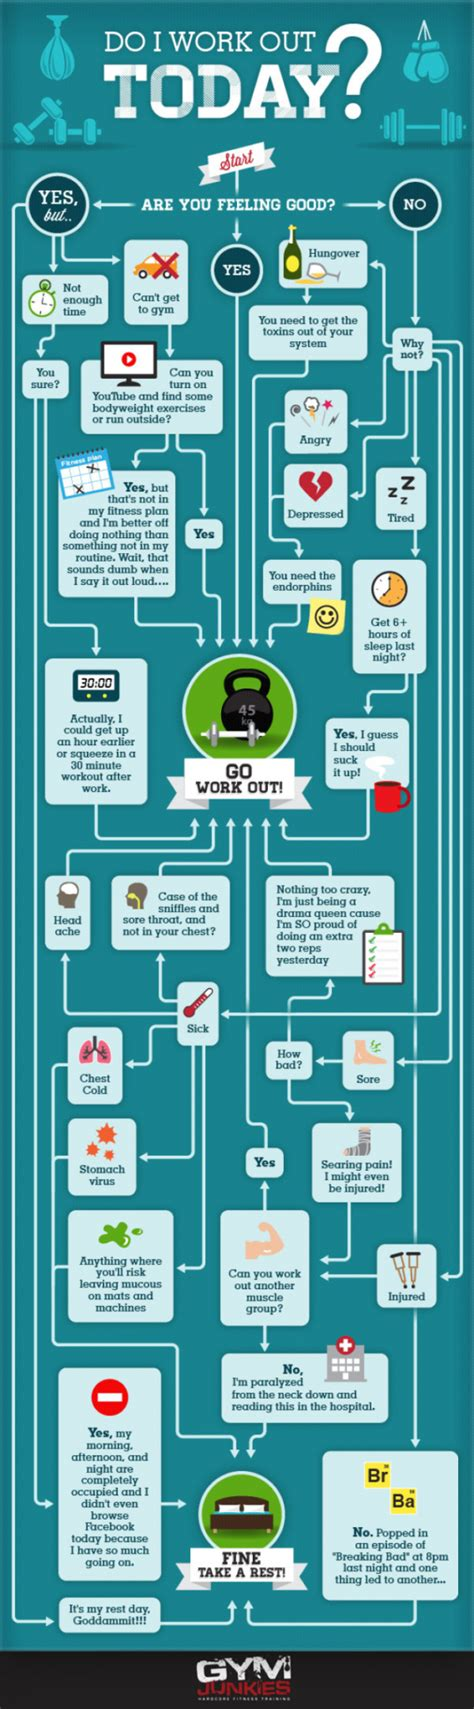 today was a day flowchart should you go to the today menprovement